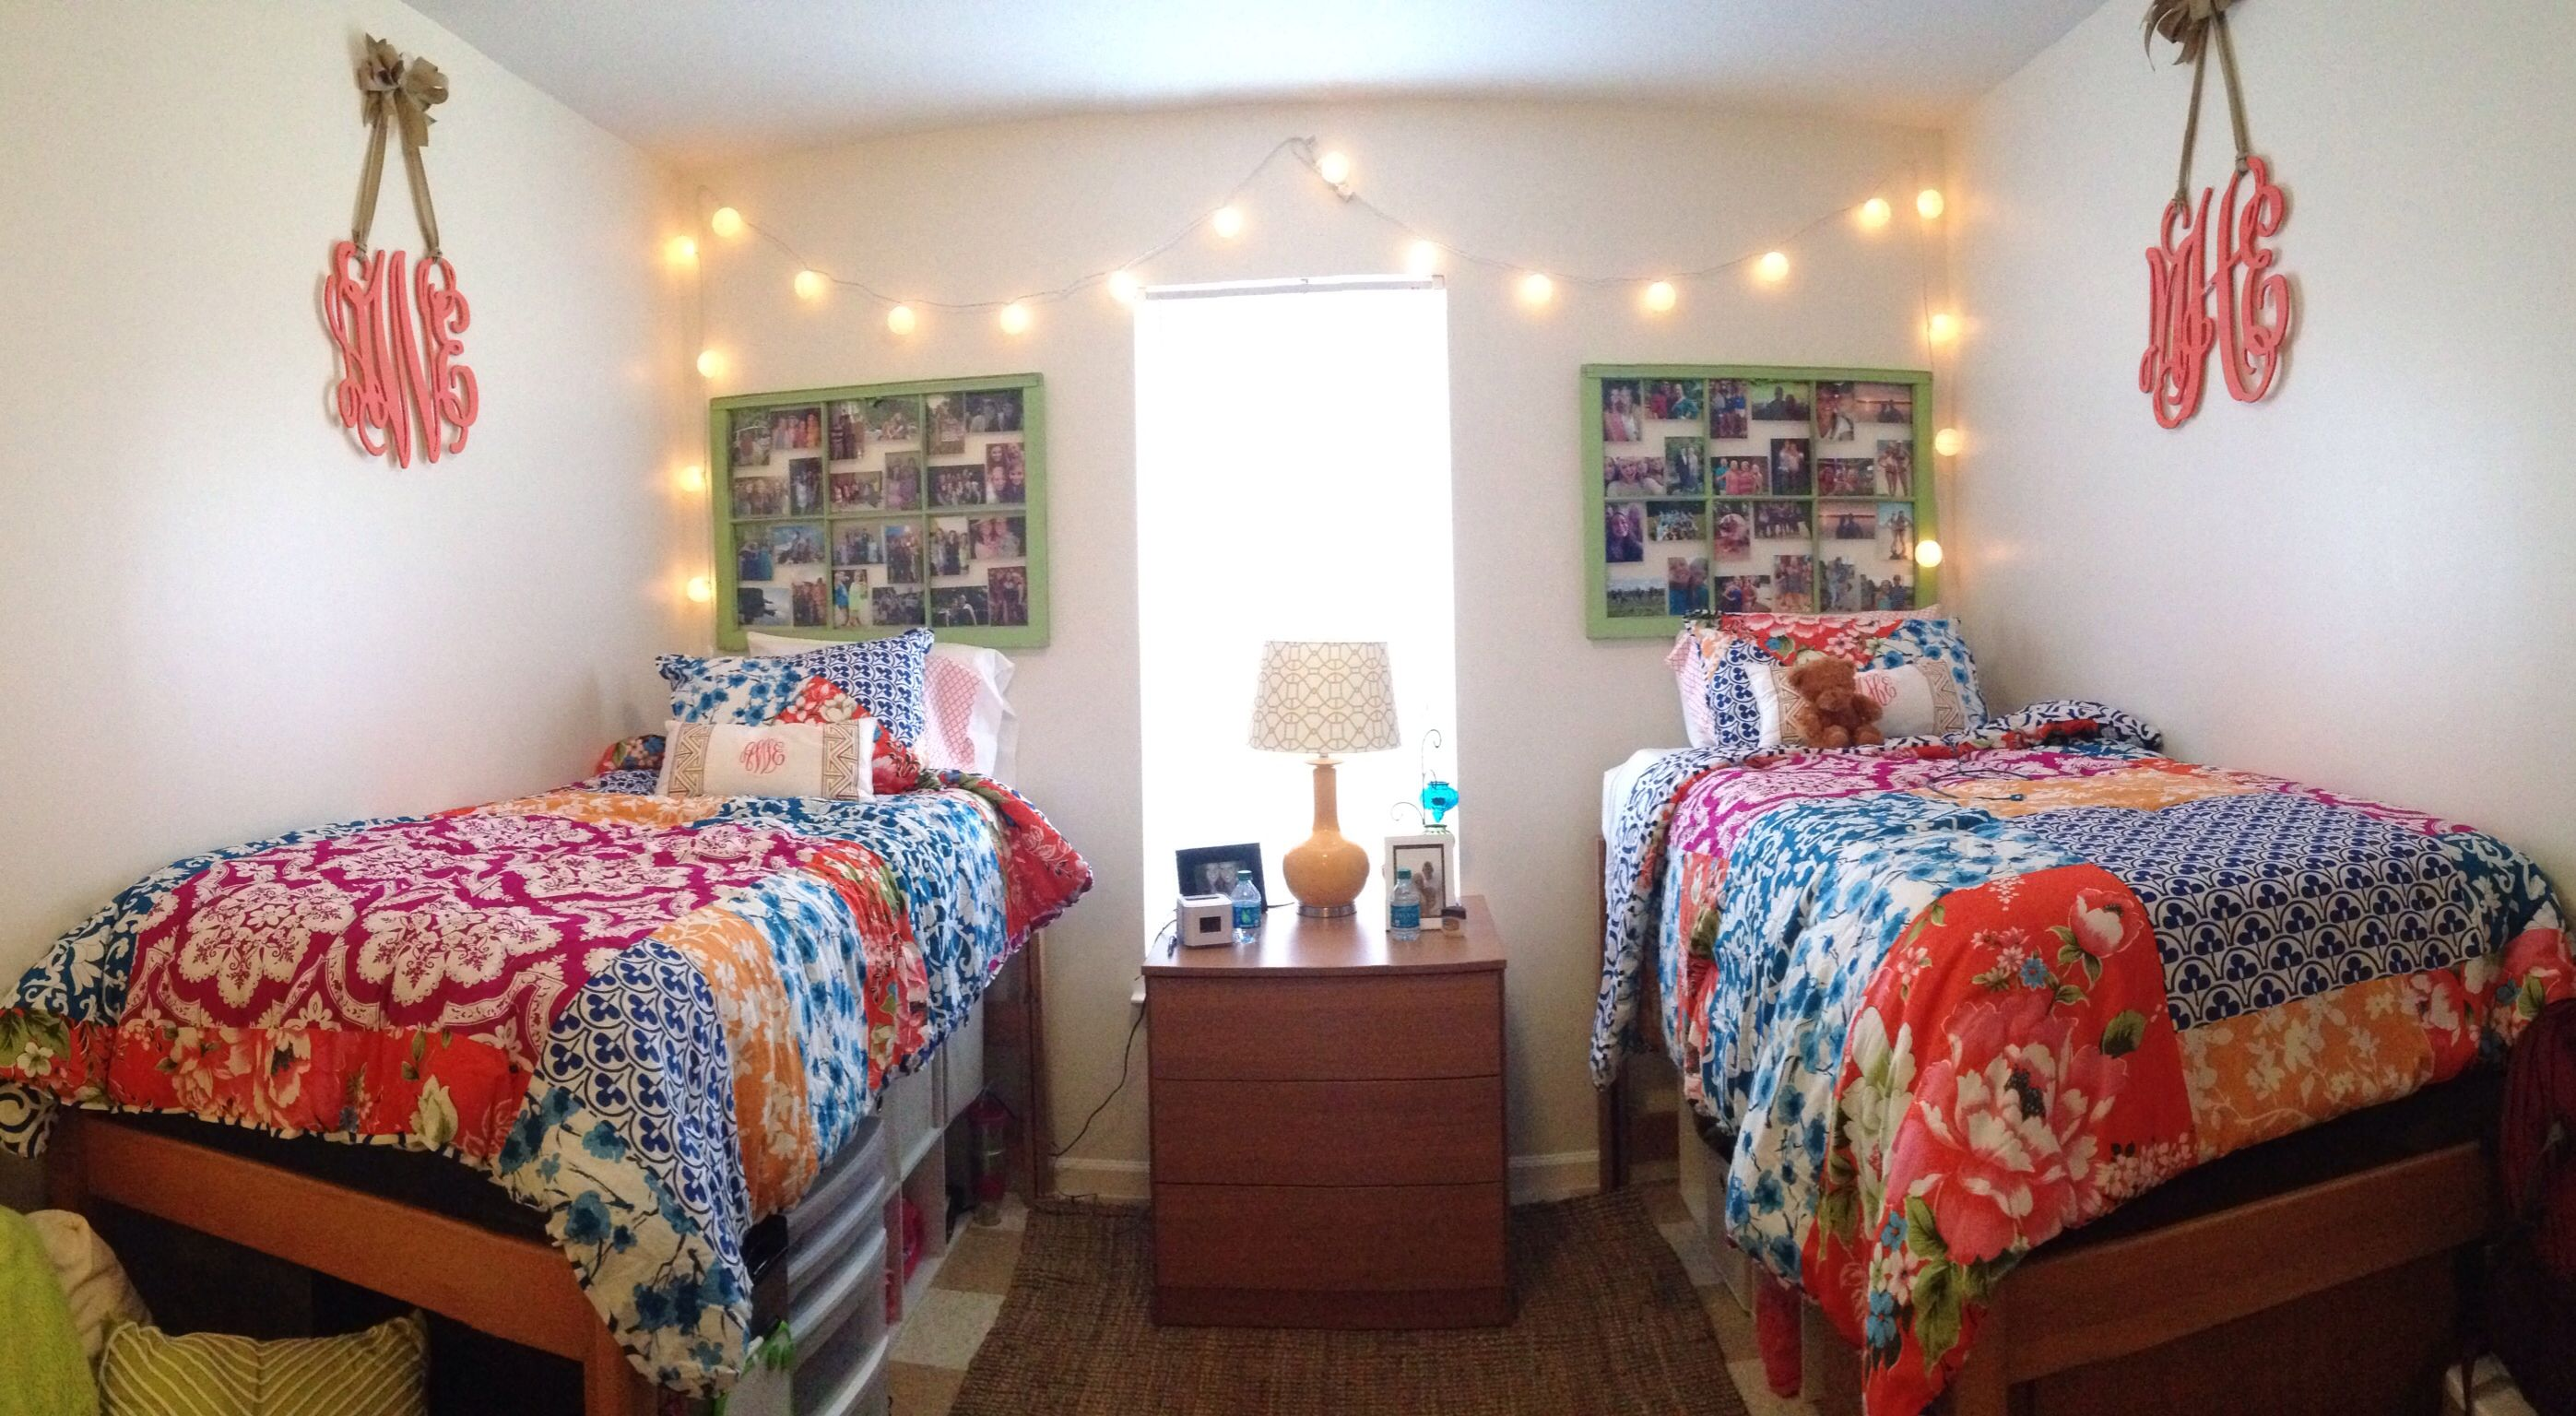 Cute College Dorm Room At Georgia College And State University Gcsu College Dorm College Dorm Rooms Georgia College Dorm Room